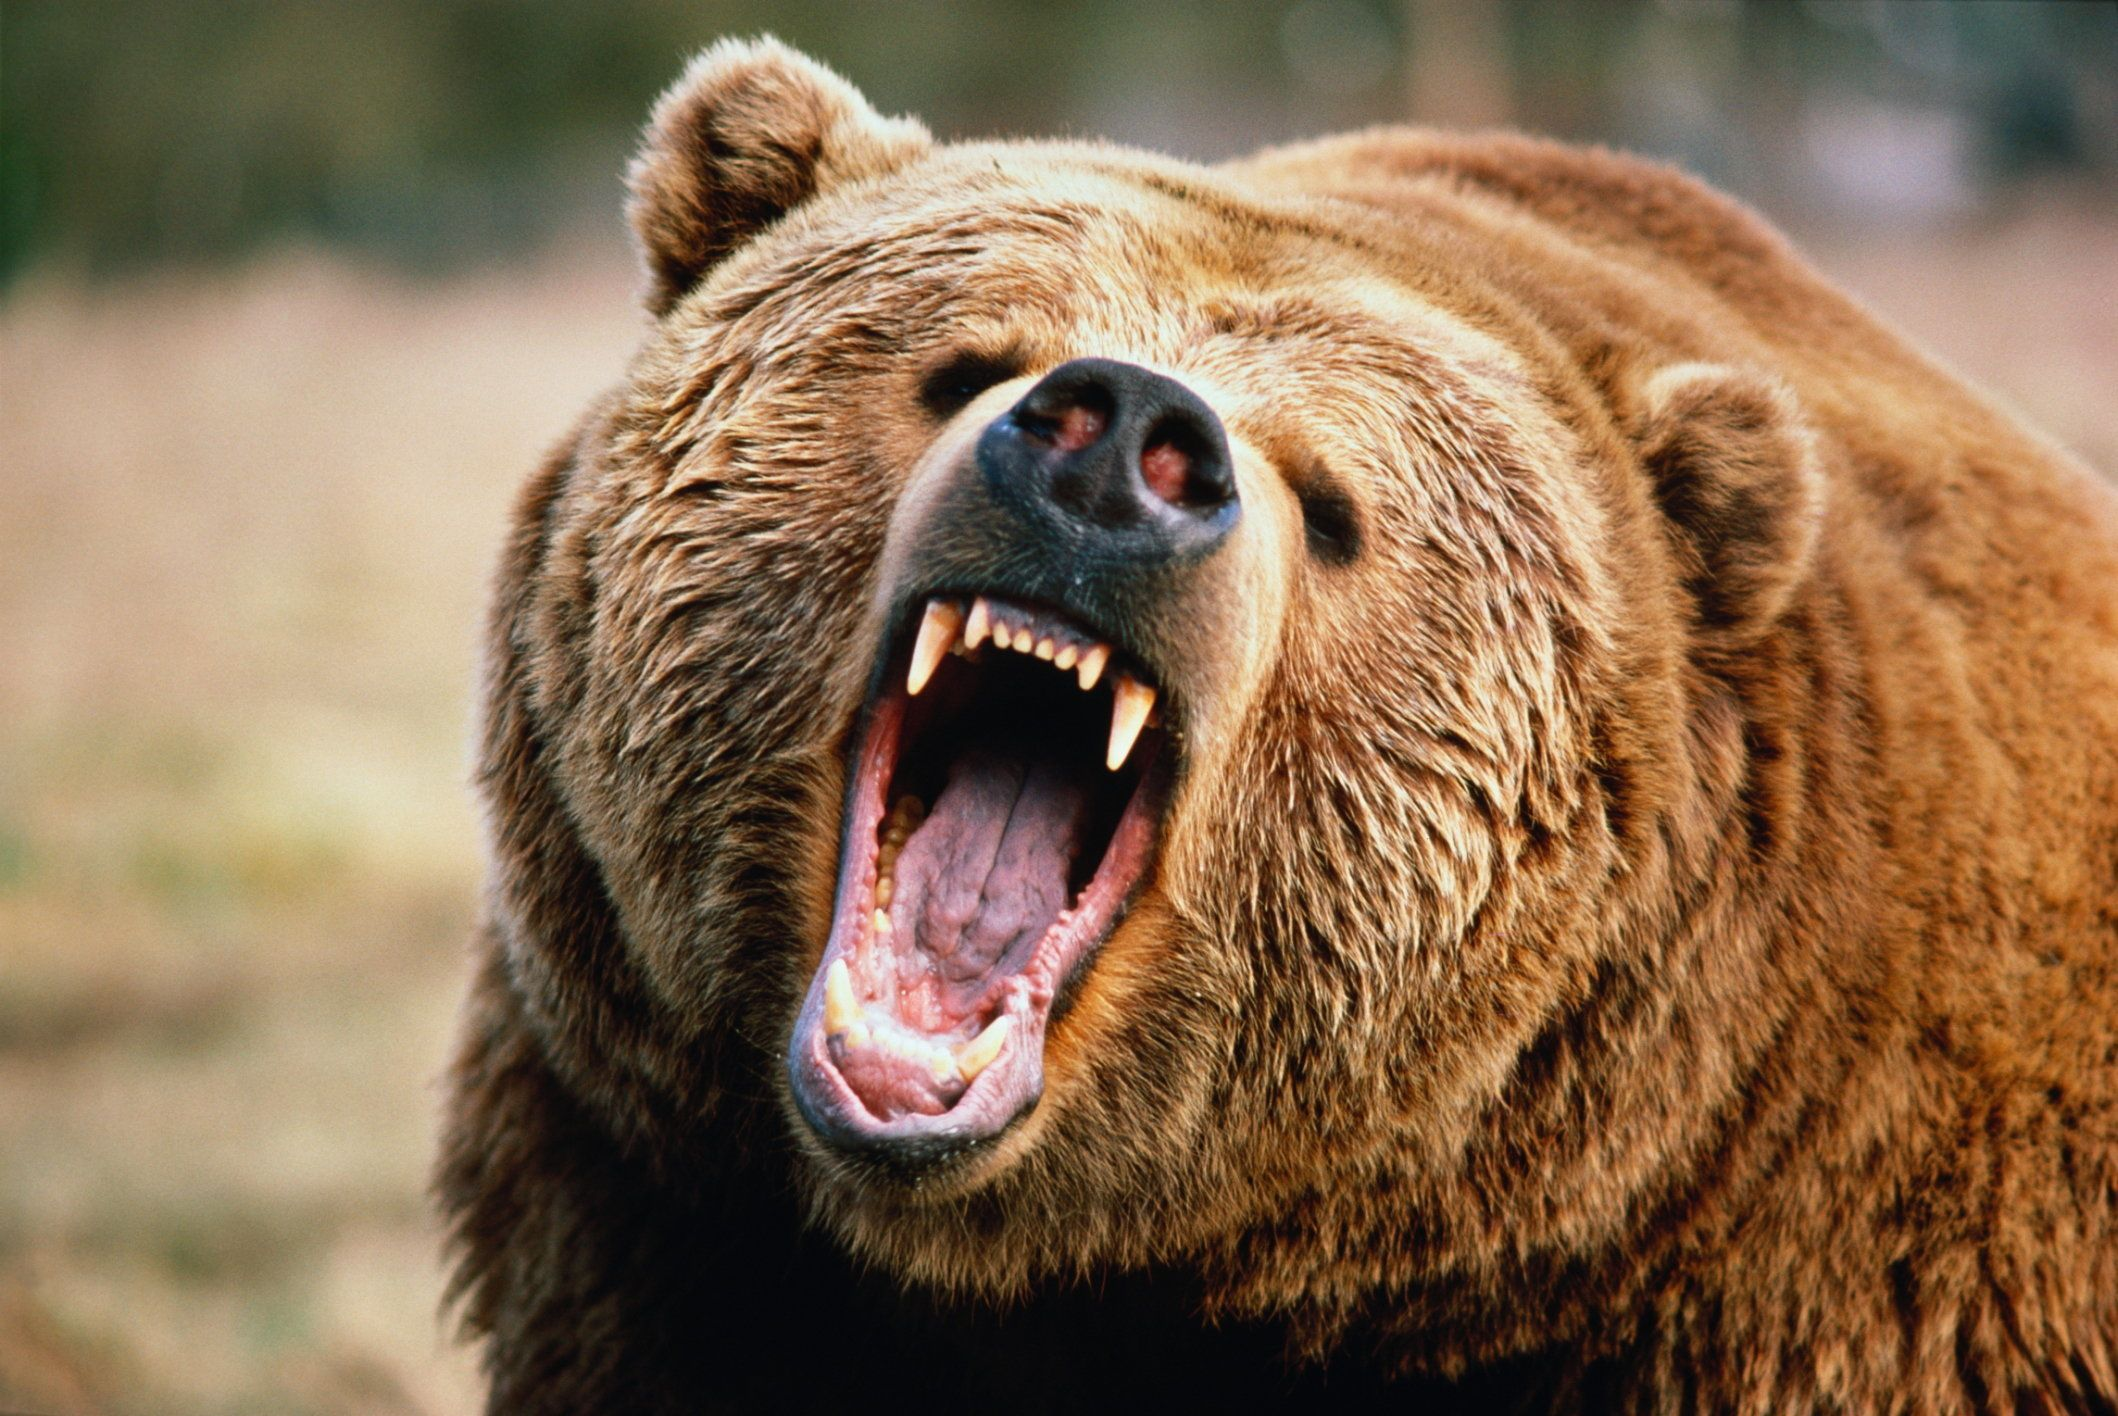 Other common name: Grizzly bear. Sometimes classified as sub-species Ursus arctos horribilis. Native to Northwest America, Alaska, Canada and Russia, isolated populations in Europe. Habitat: mixed woodland and open areas. Captive.